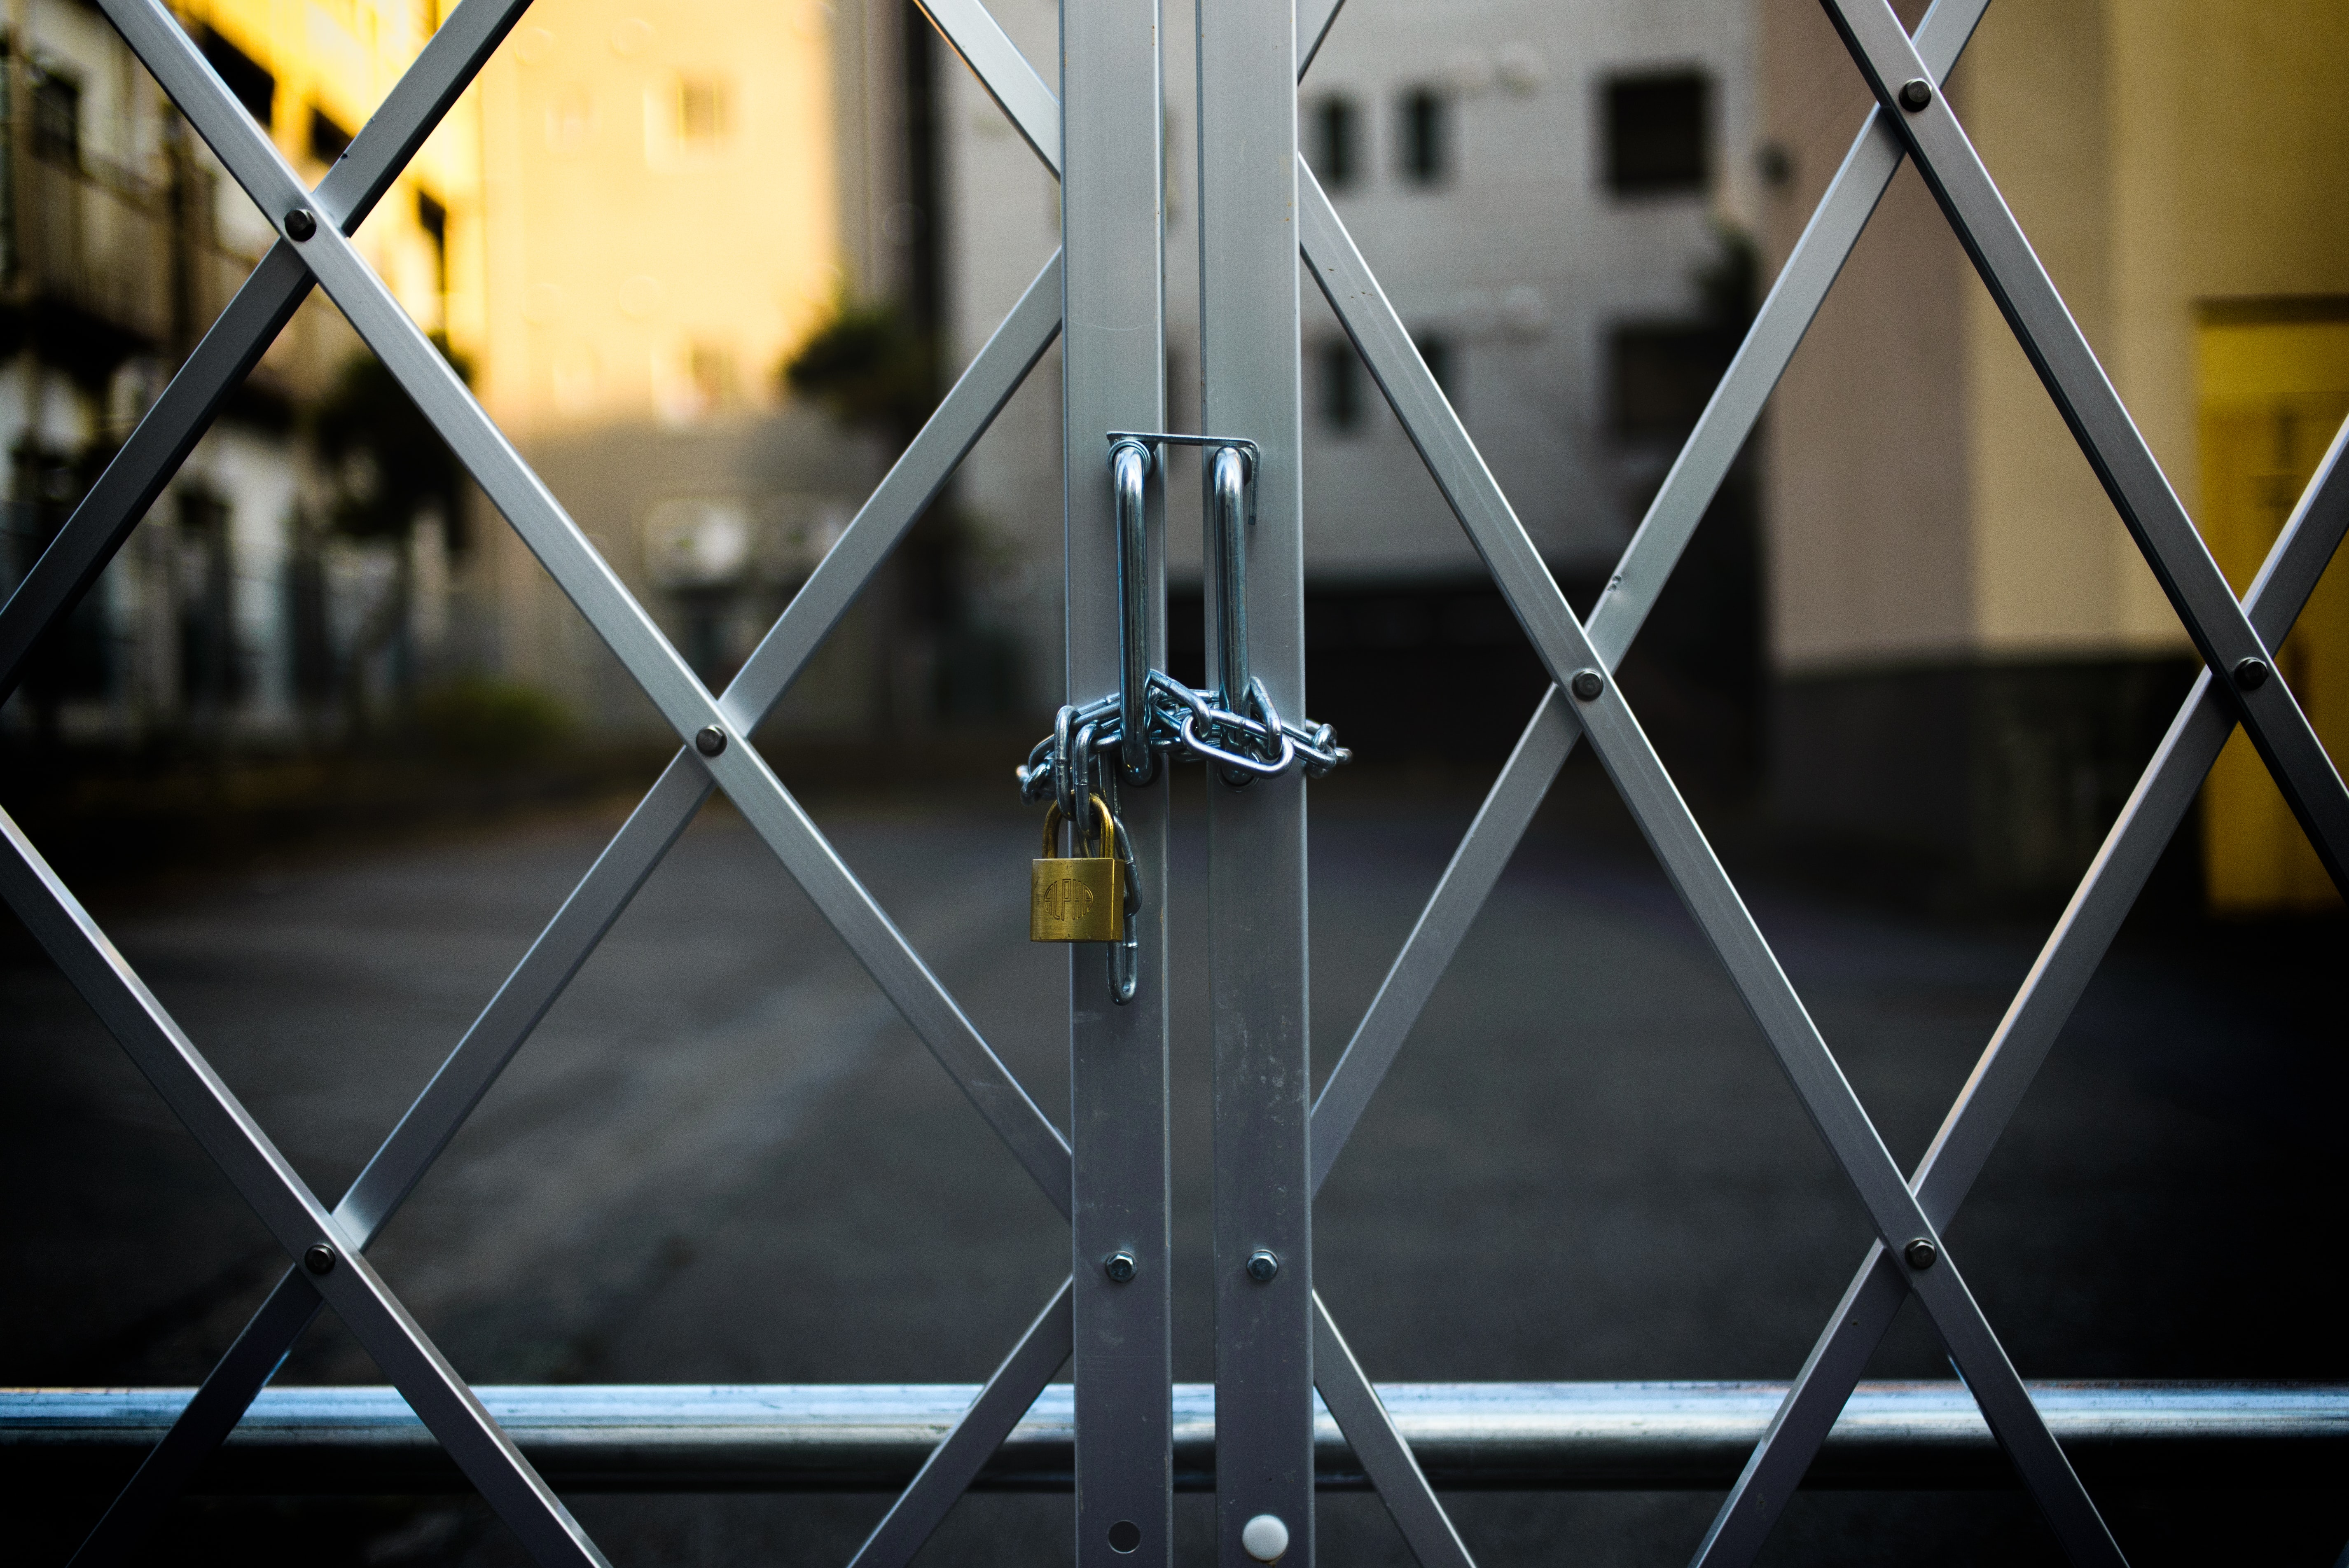 adWhite marketing gated or ungated content decision photo of locked gate